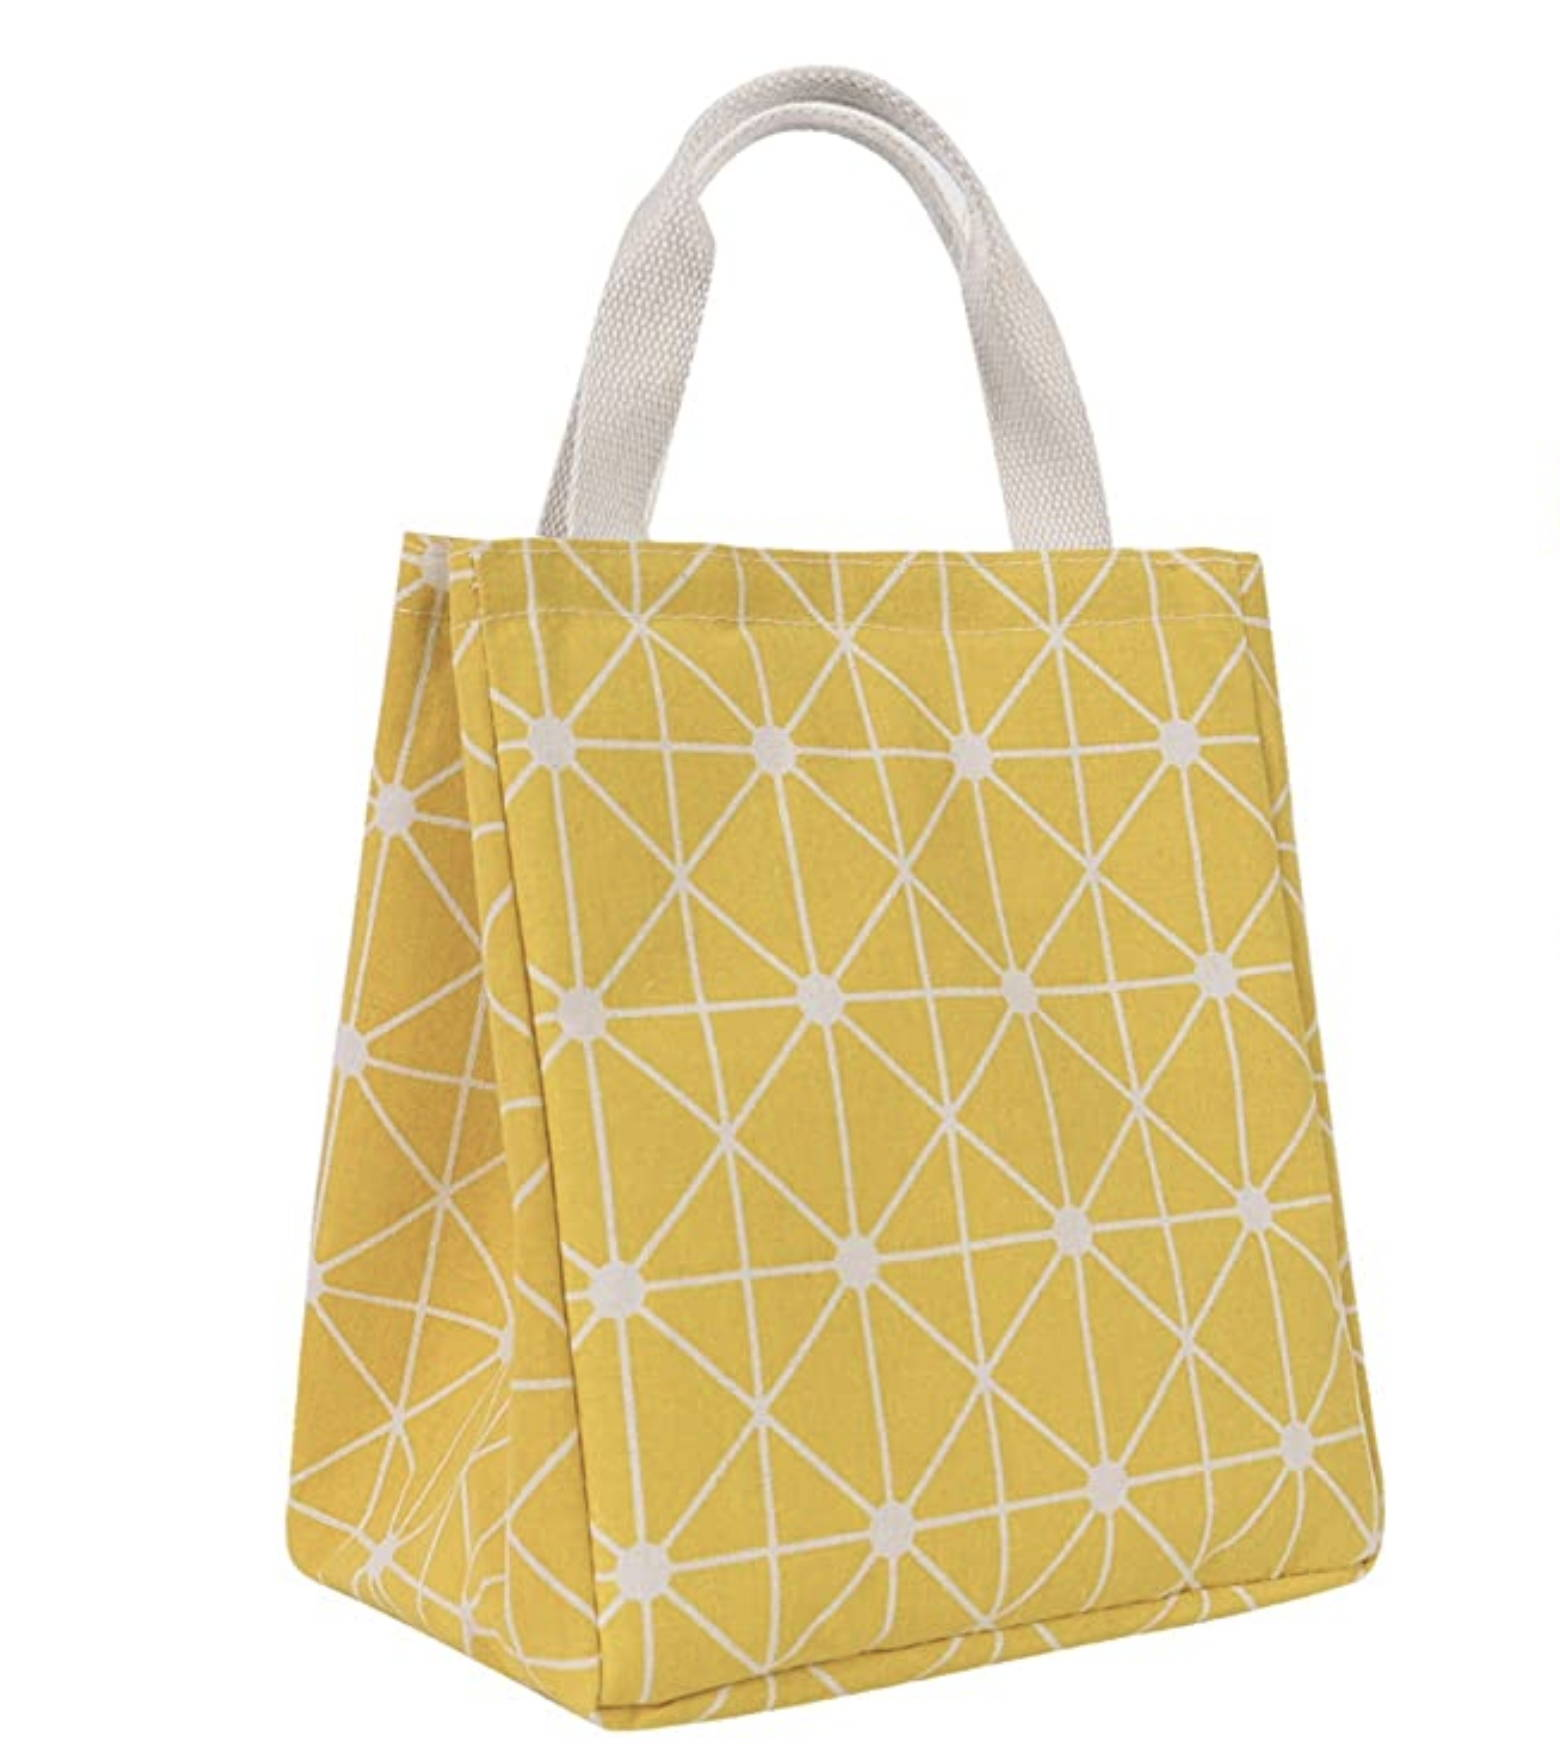 A Yellow tote for transporting expressed breast milk to NICU for preemie baby